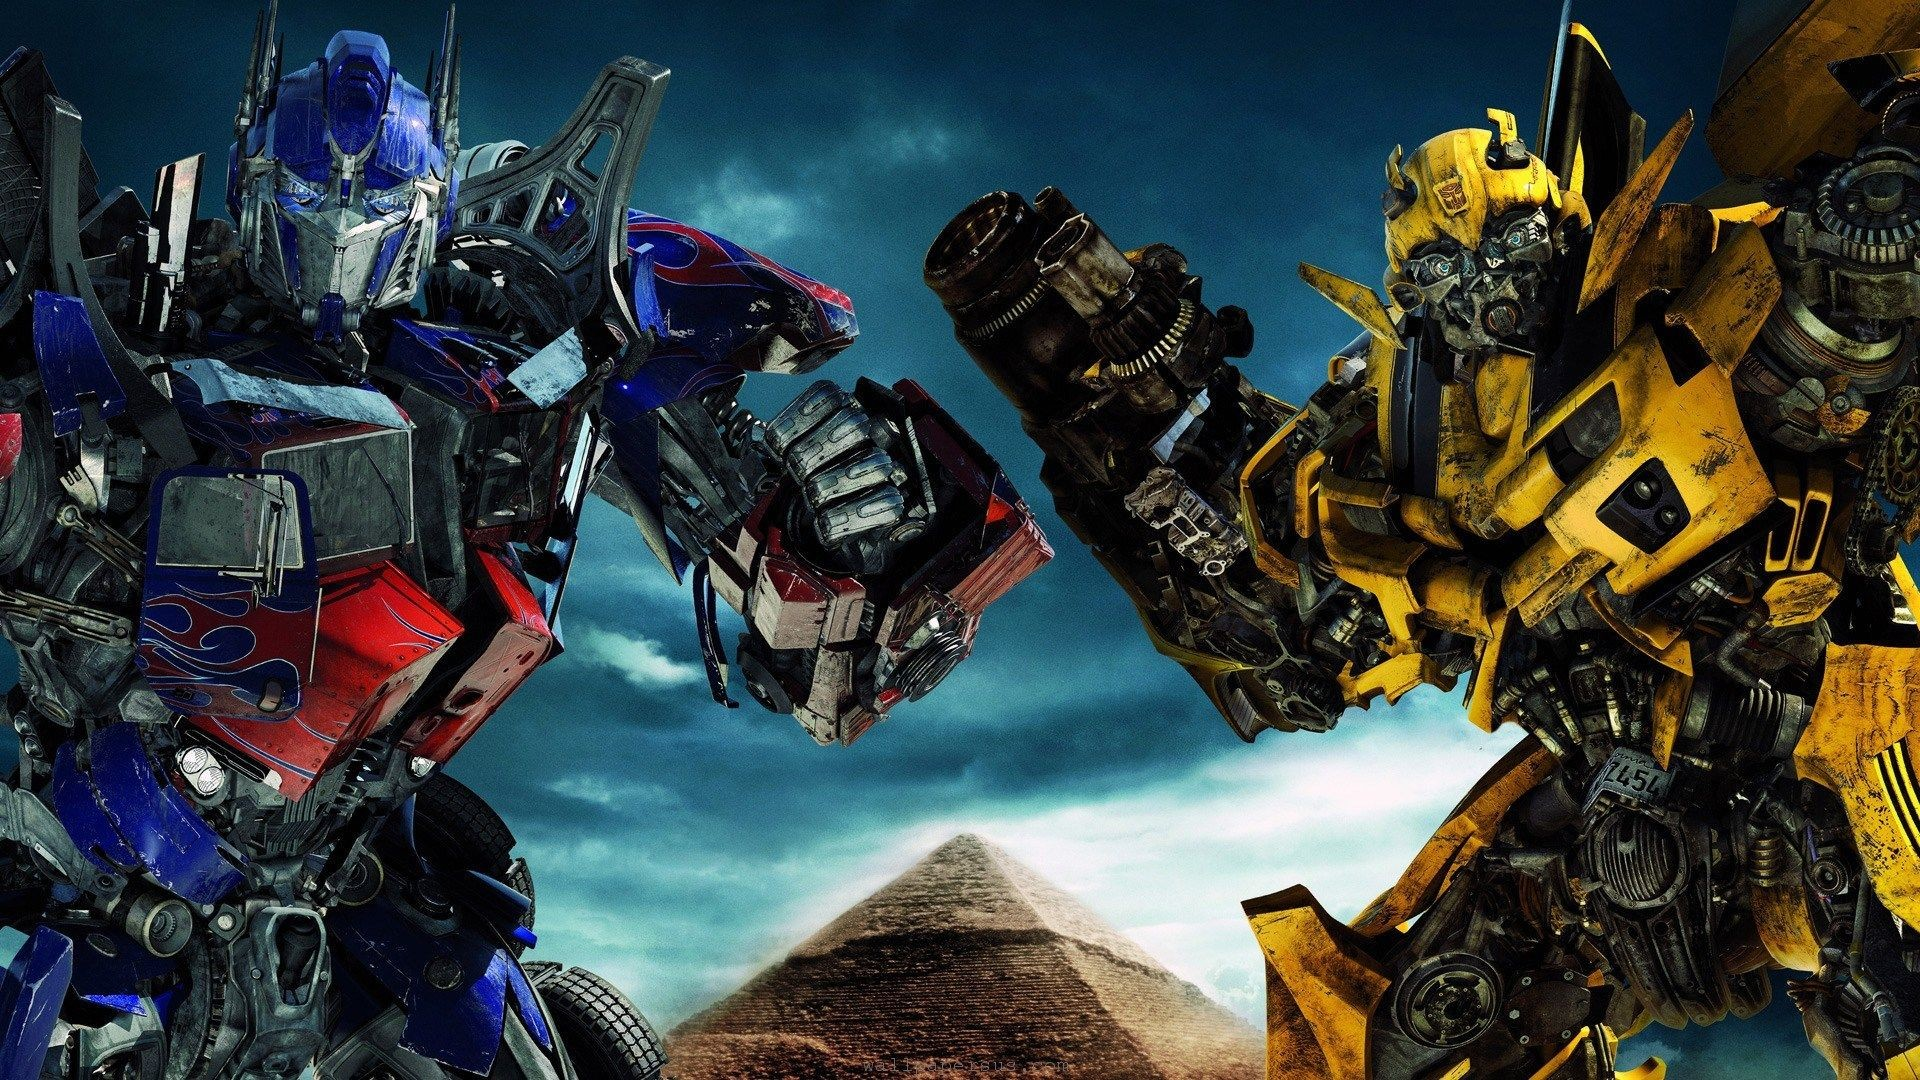 Res: 1920x1080, Transformers Autobots Wallpapers - Wallpaper Cave